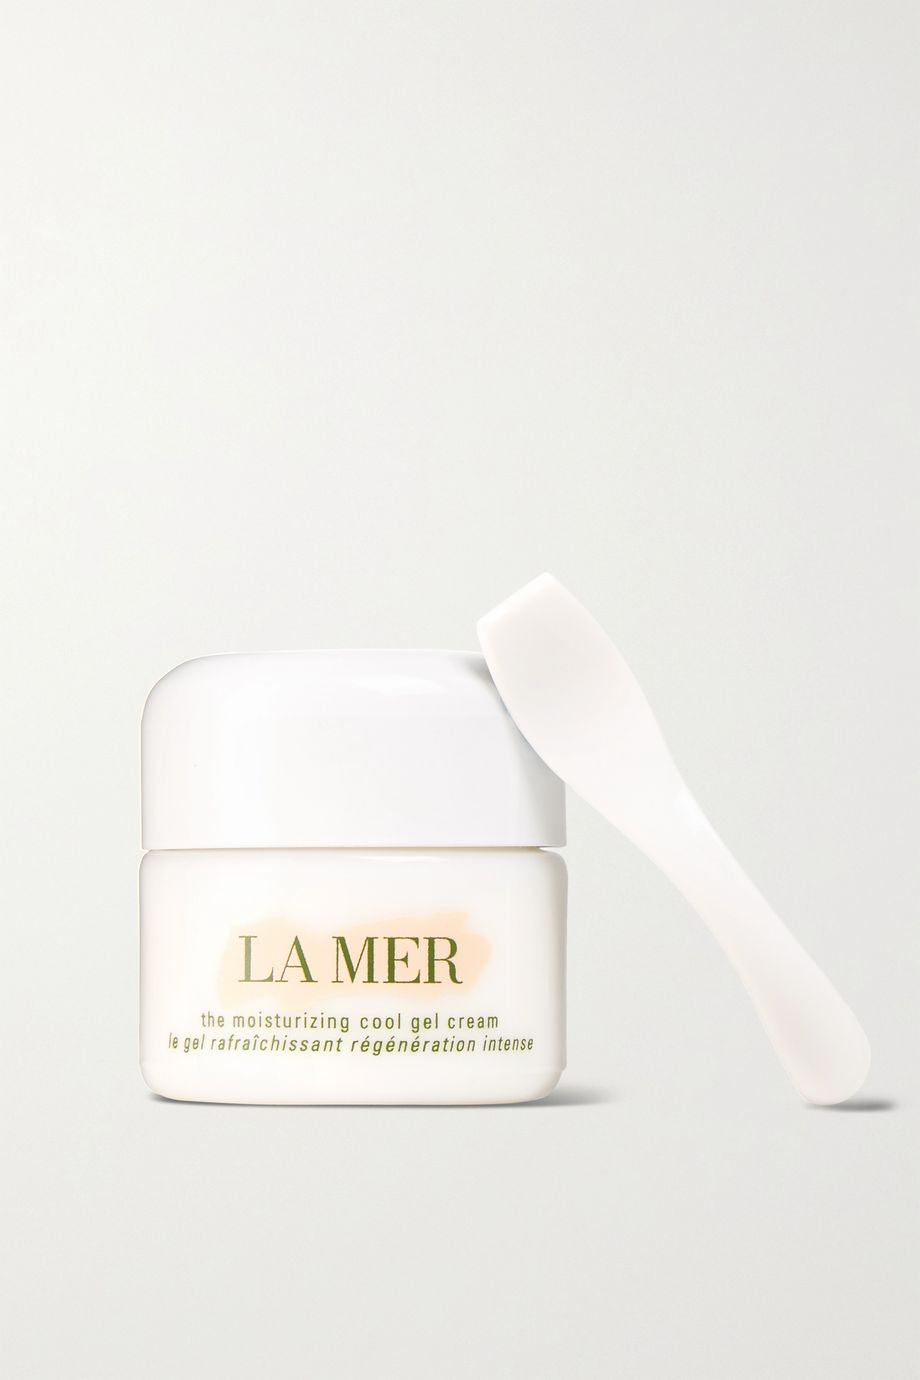 La Mer The Moisturizing Cool Gel Cream, 15ml